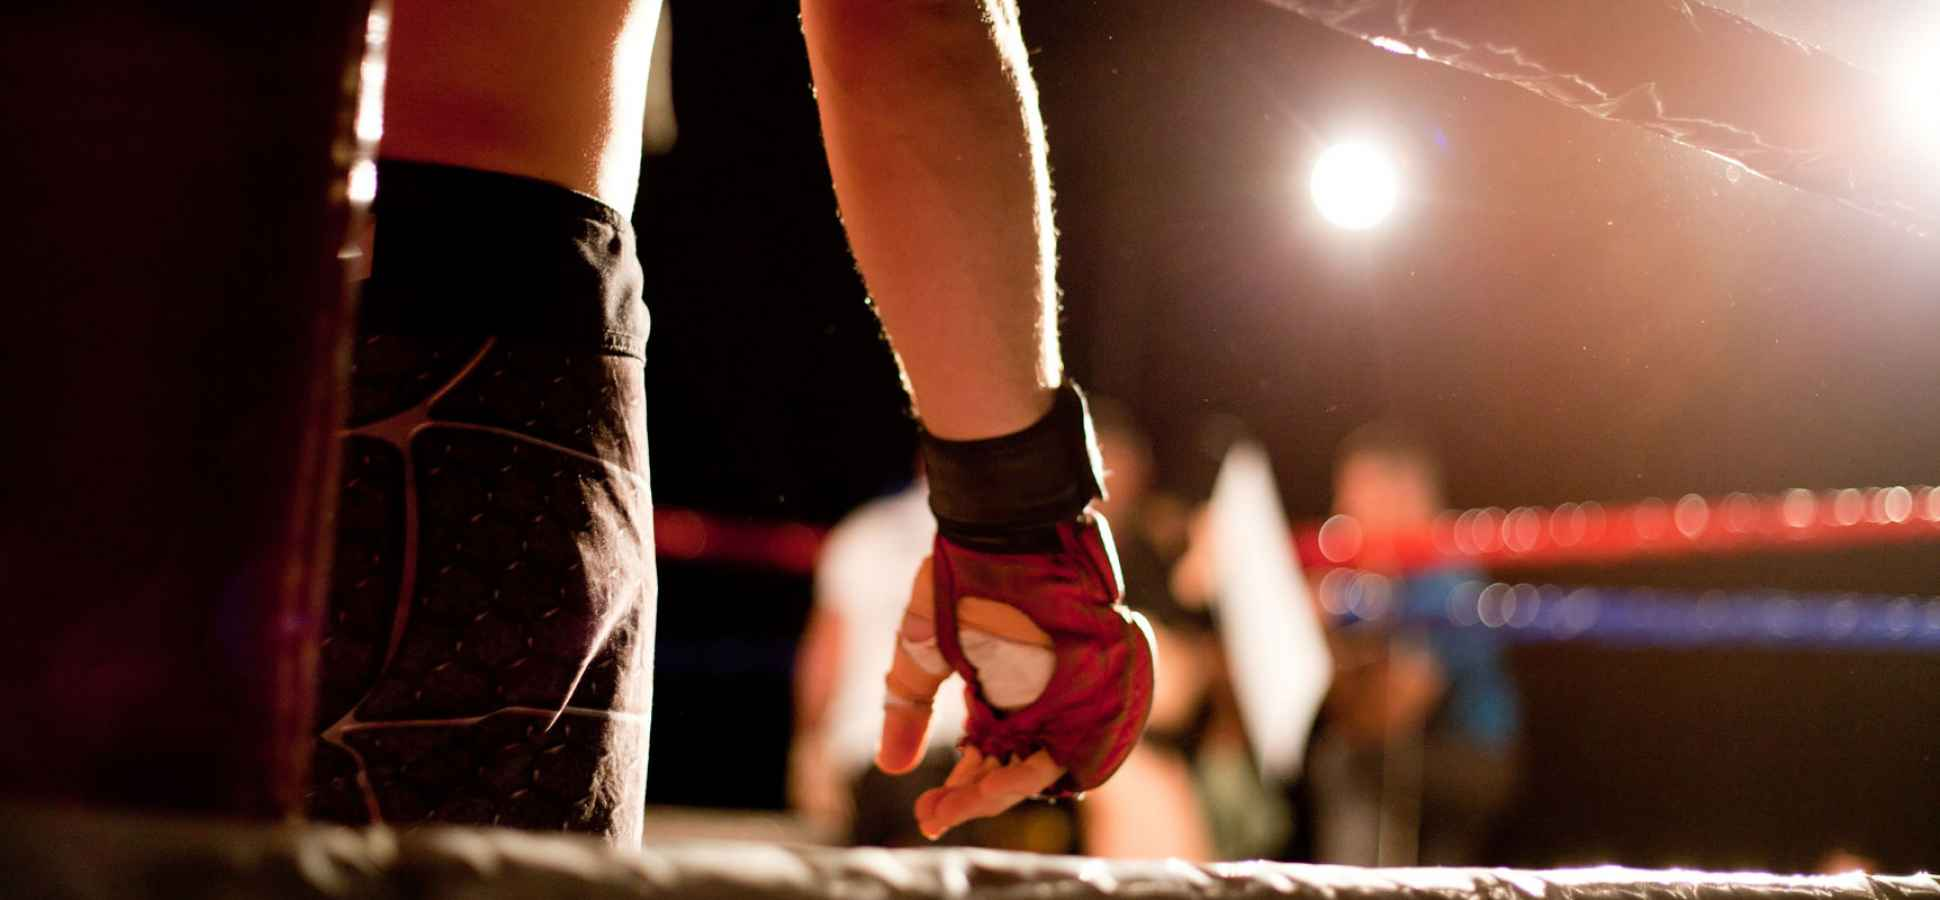 Take These Leadership Skills From the Boxing Ring